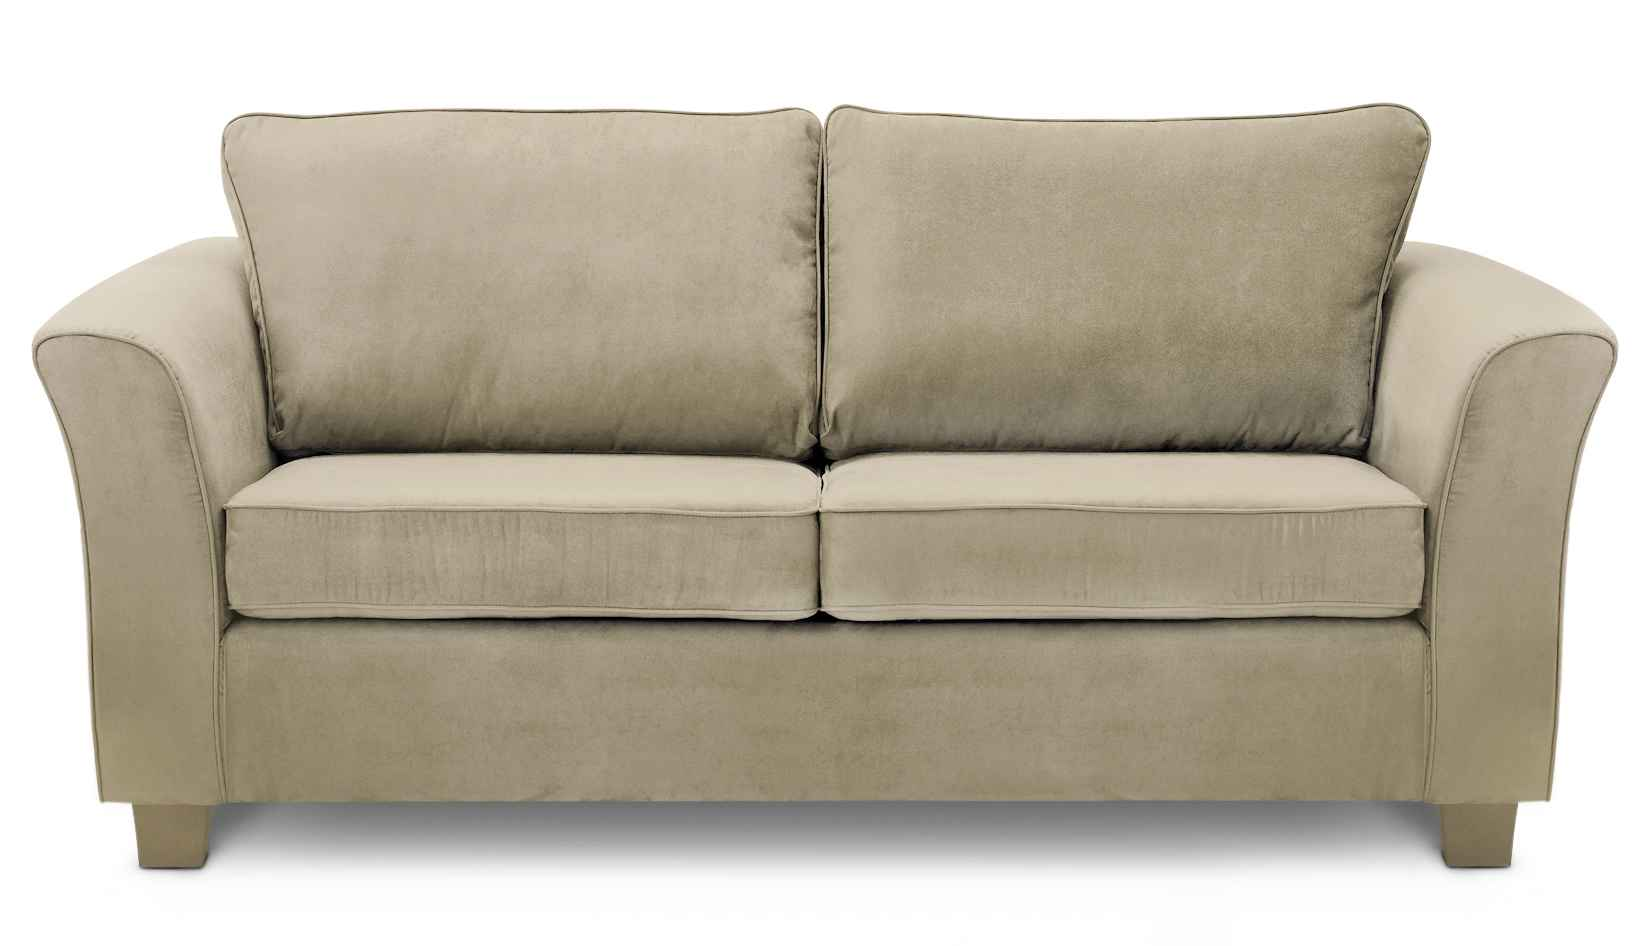 Cheap furniture feel the home for Cheap sectional couch